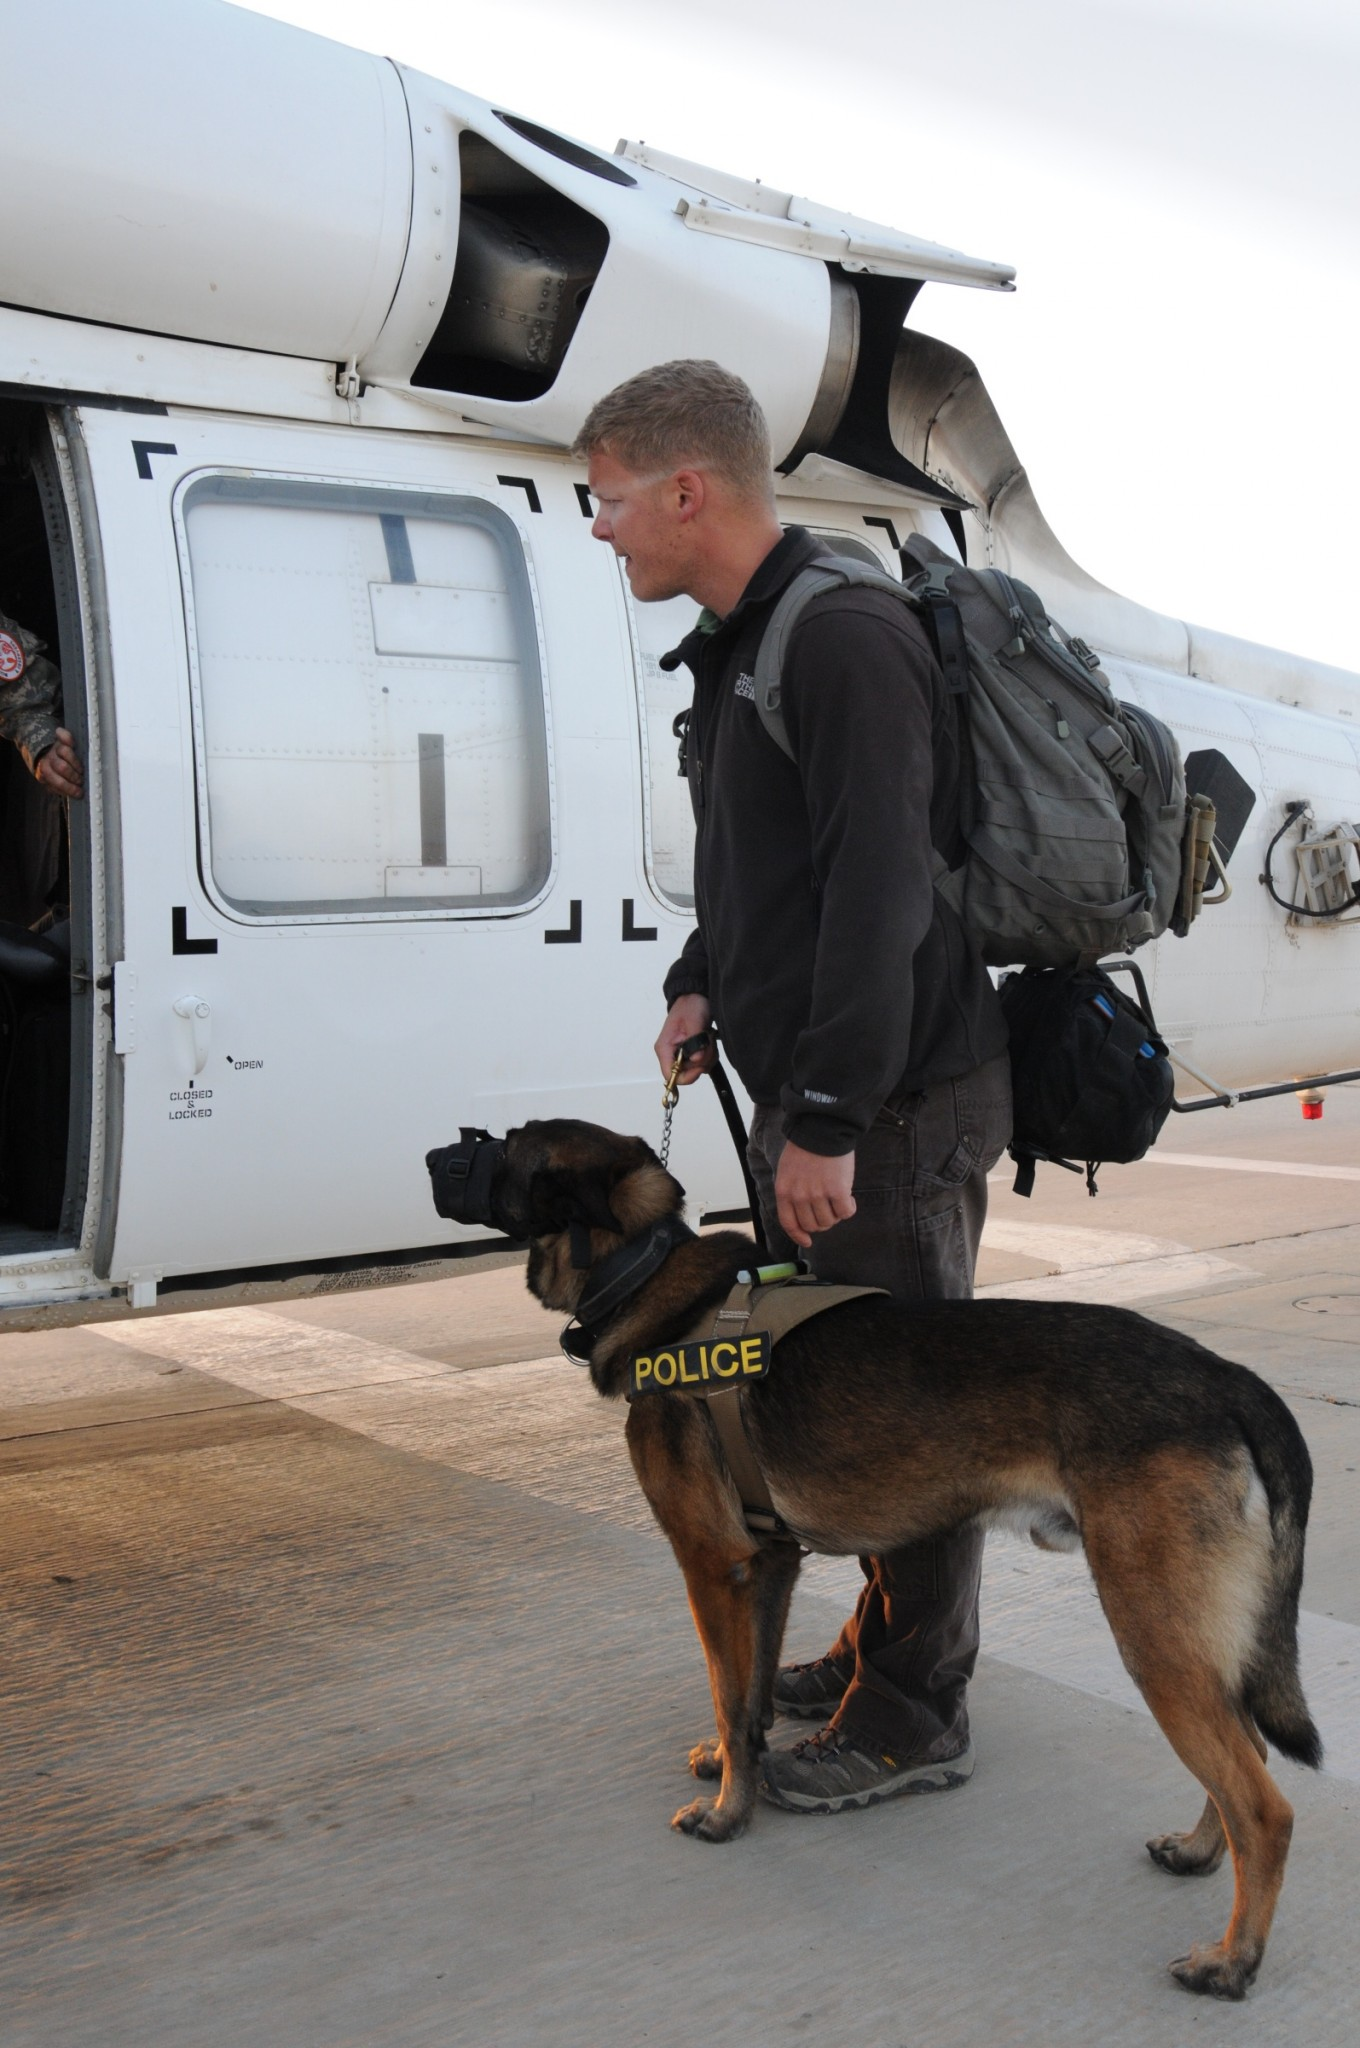 Dano and his handler Staff Sgt. John Breyer preparing to board a UH-60 Black Hawk from MFO's North Camp in Egypt to get emergency care for Dano in Israel. Photo by US Army Capt. Jennifer Dyrcz, Task Force Sinai Public Affairs